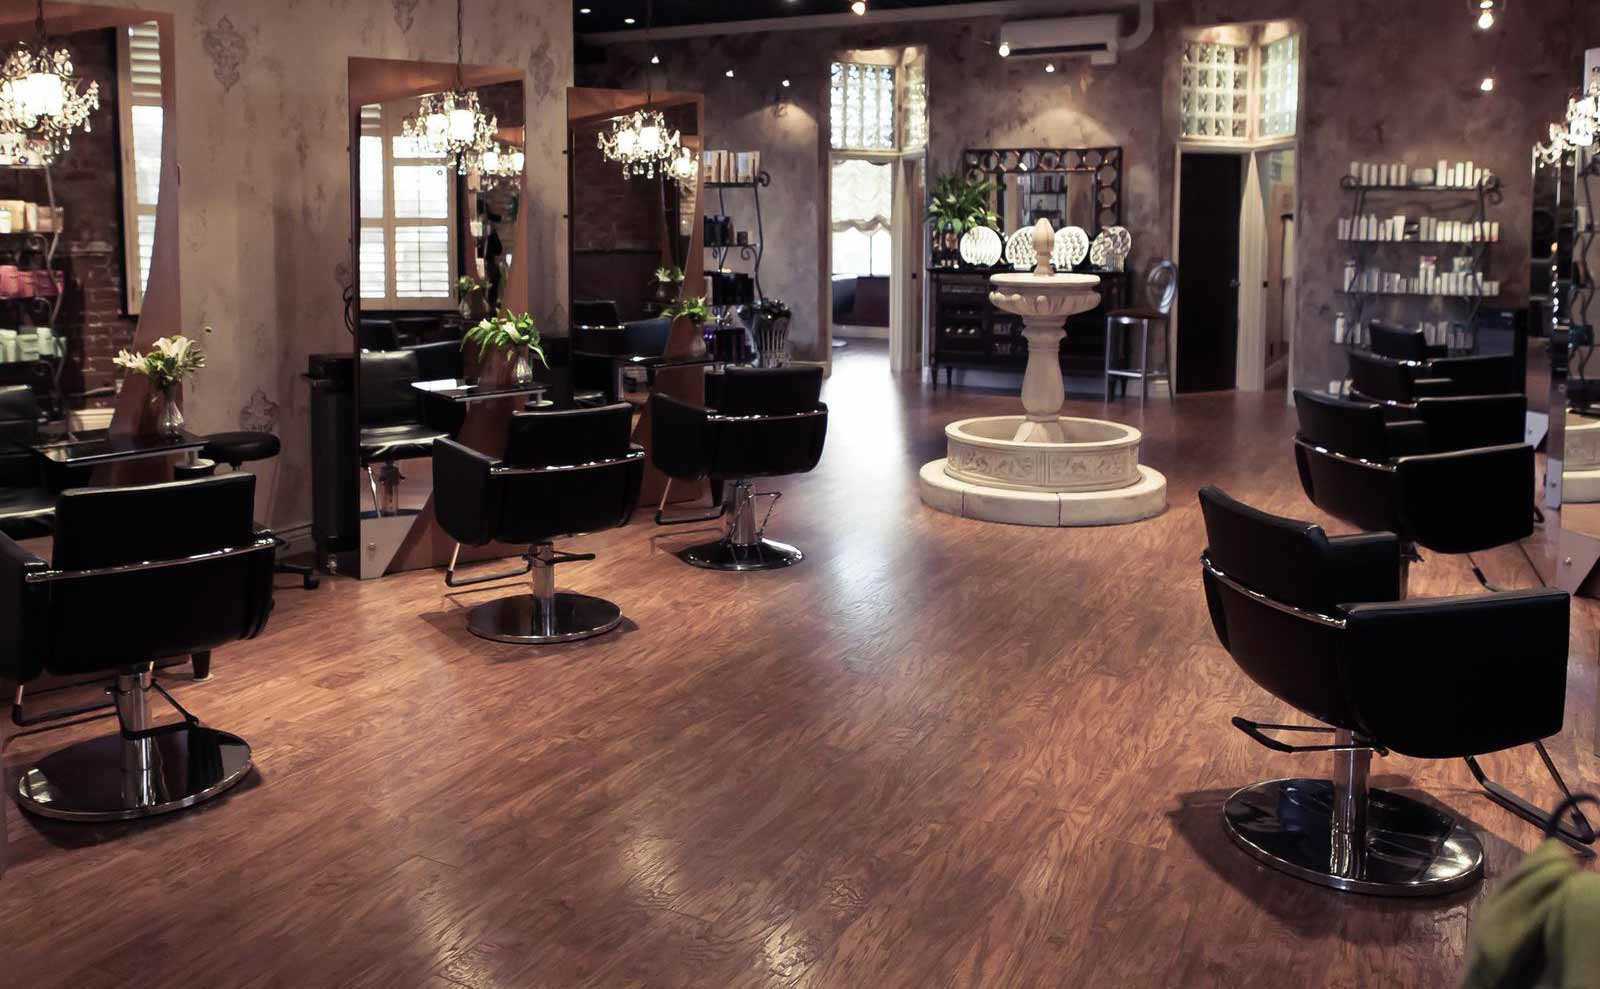 Salon Victoria S Salon A Full Service Hair Salon In Pleasanton Ca